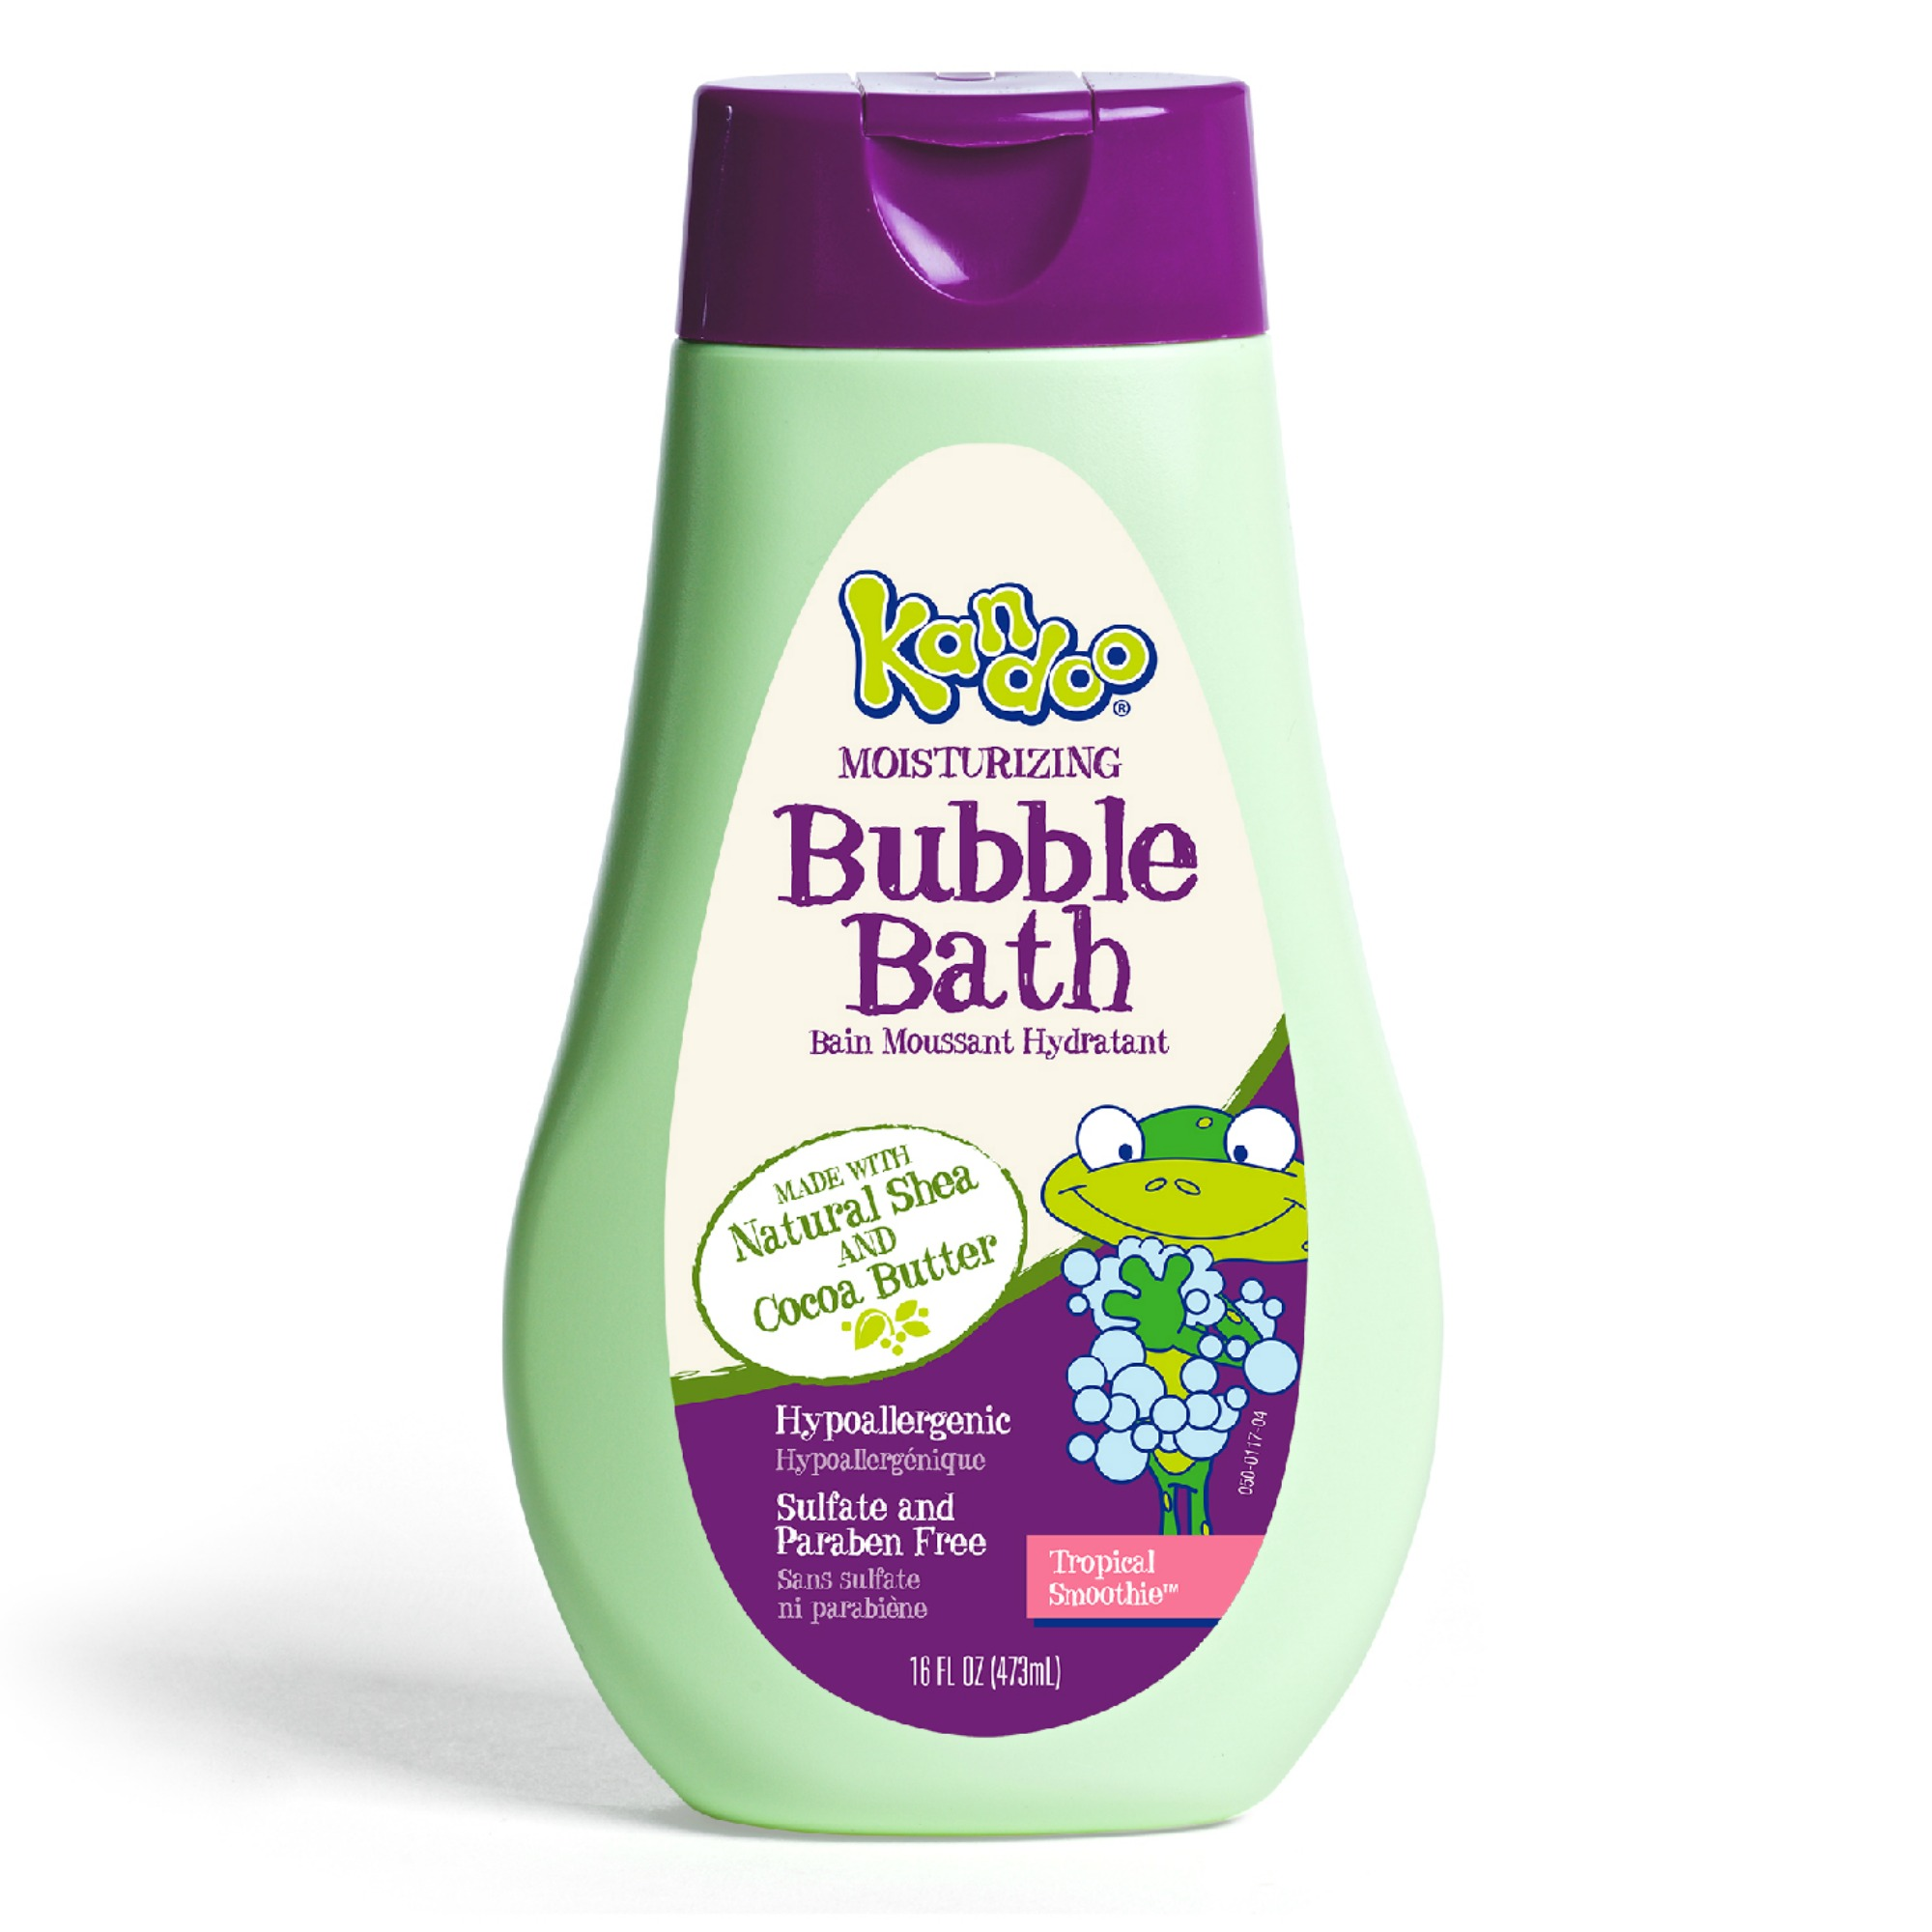 Kandoo Tropical Smoothie Bubble Bath